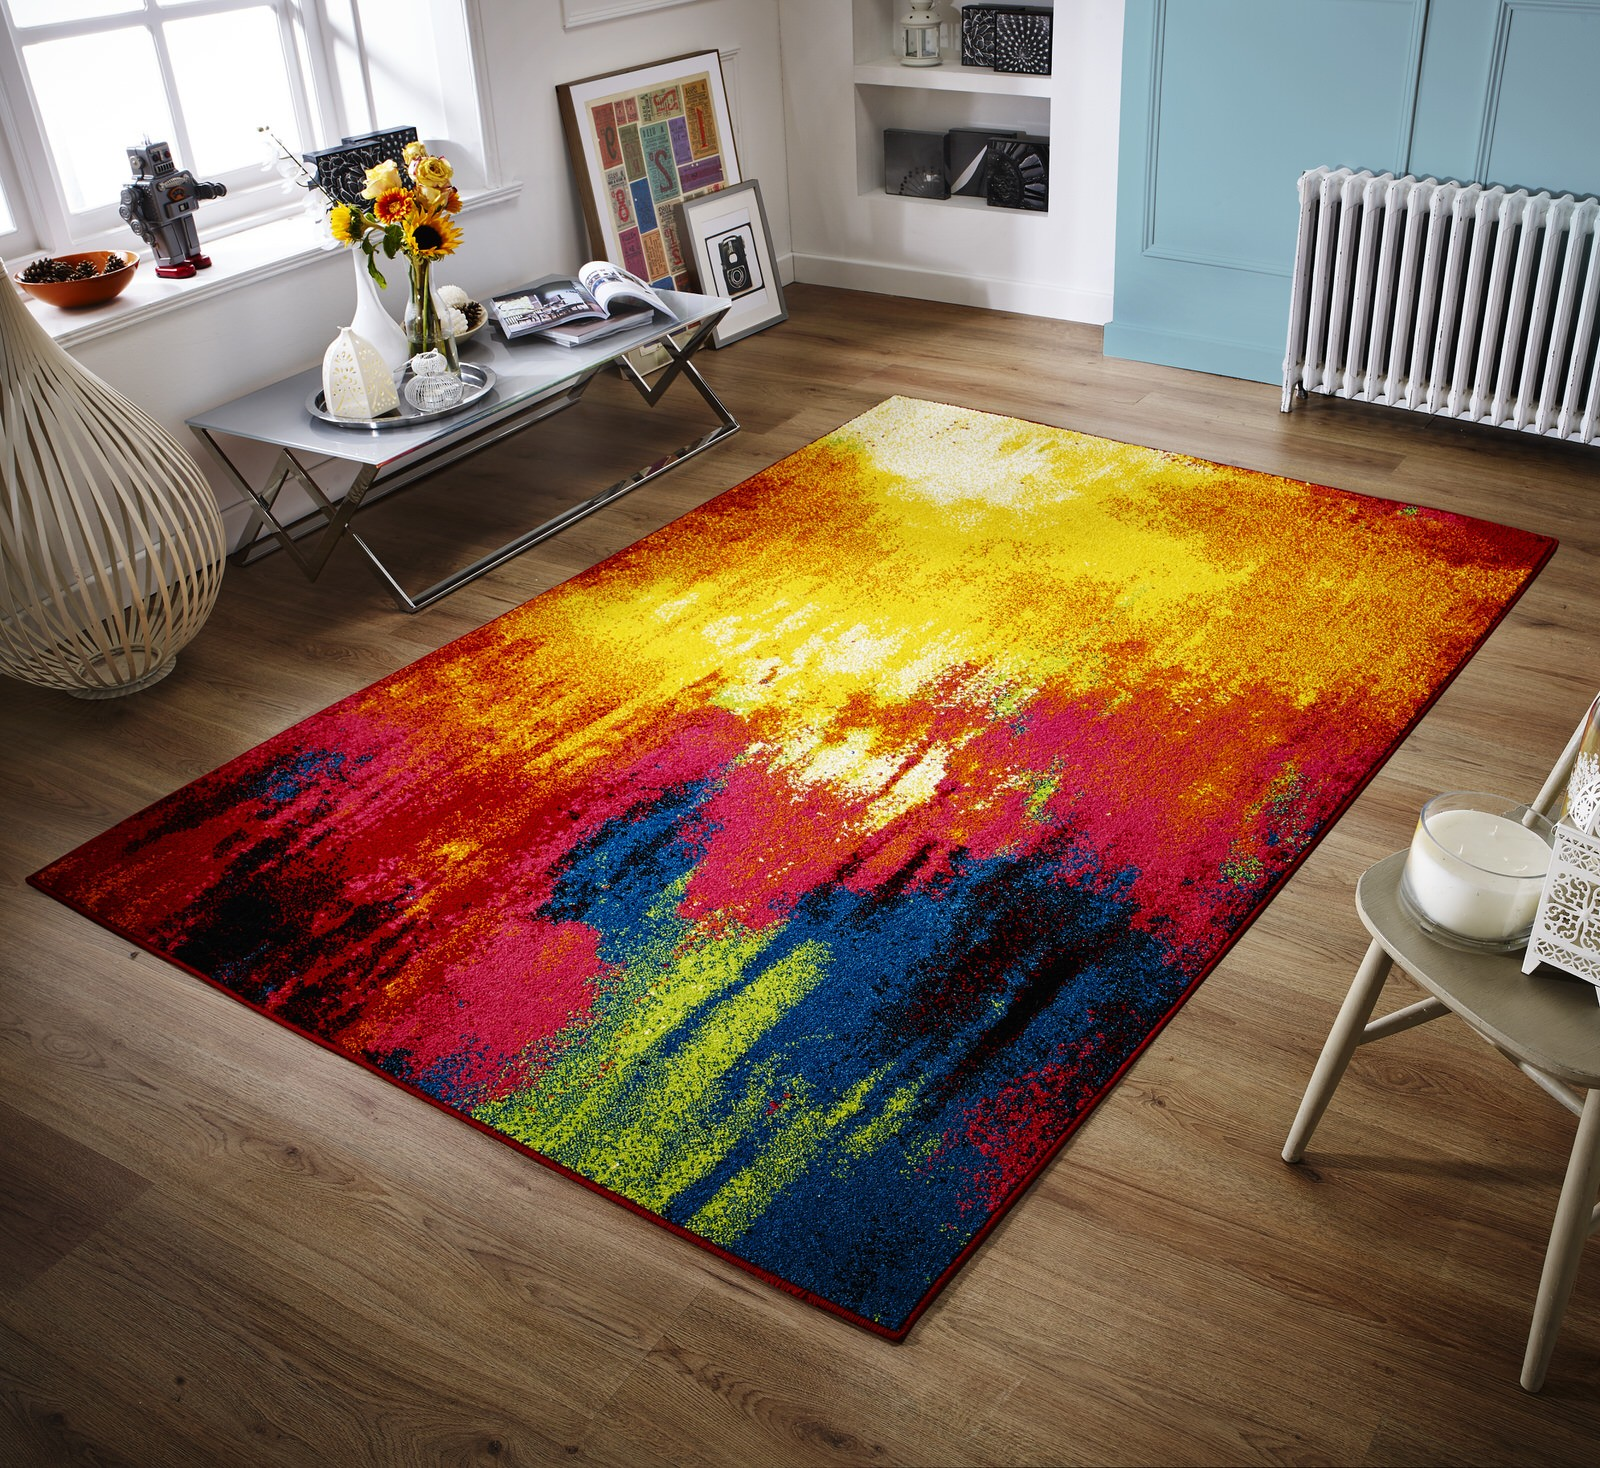 large multi coloured rugs rug designs beautiful large colourful rugs ZLOYGBK